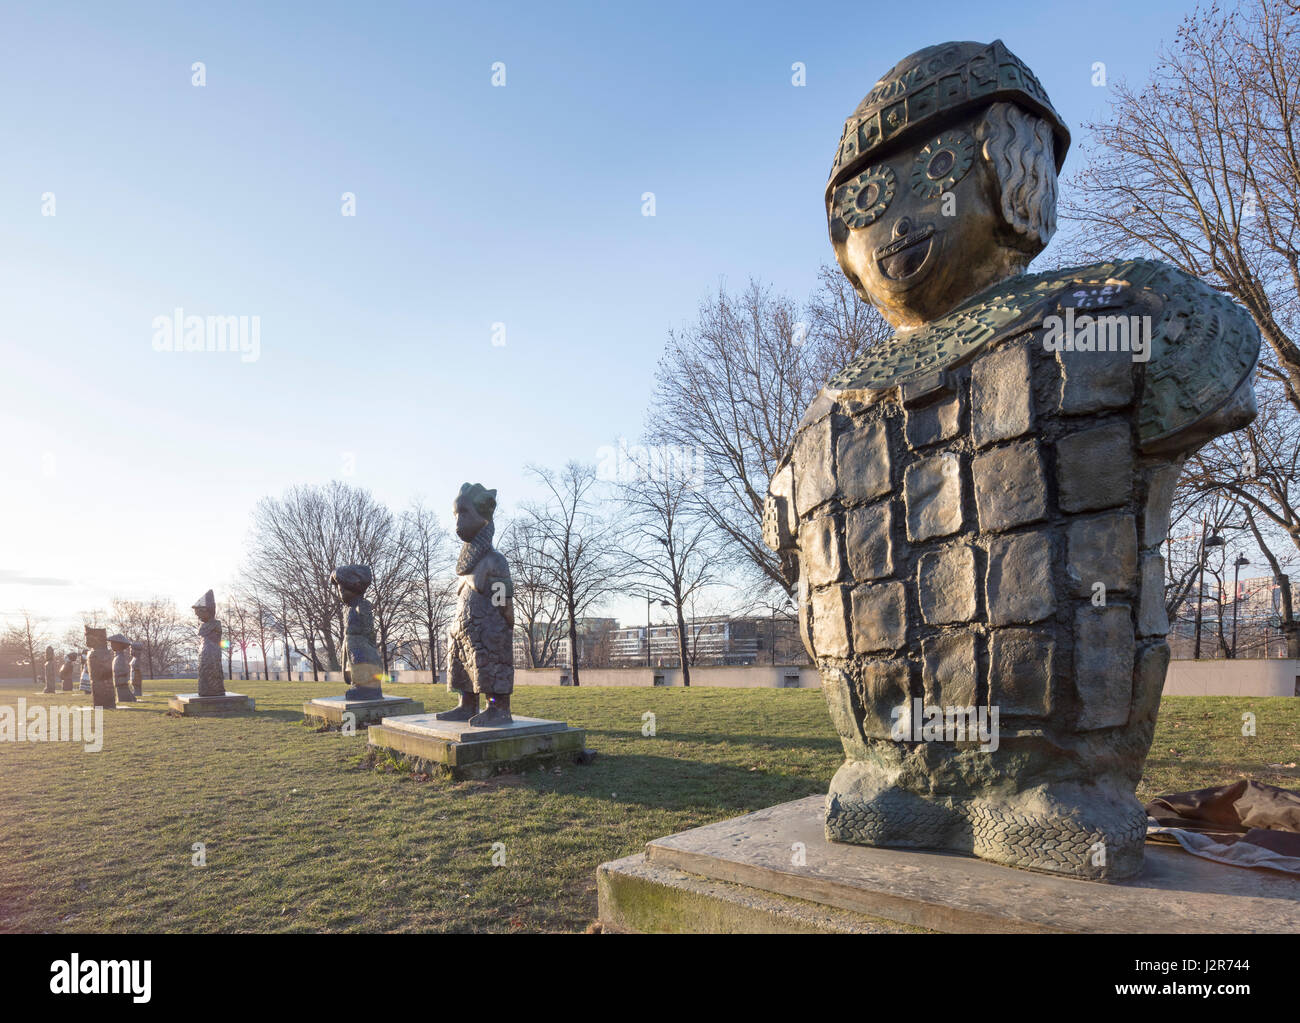 French sculptor Rachid Khimoune's Children of the World, 21 sculptures in honor of children's rights, Parc - Stock Image